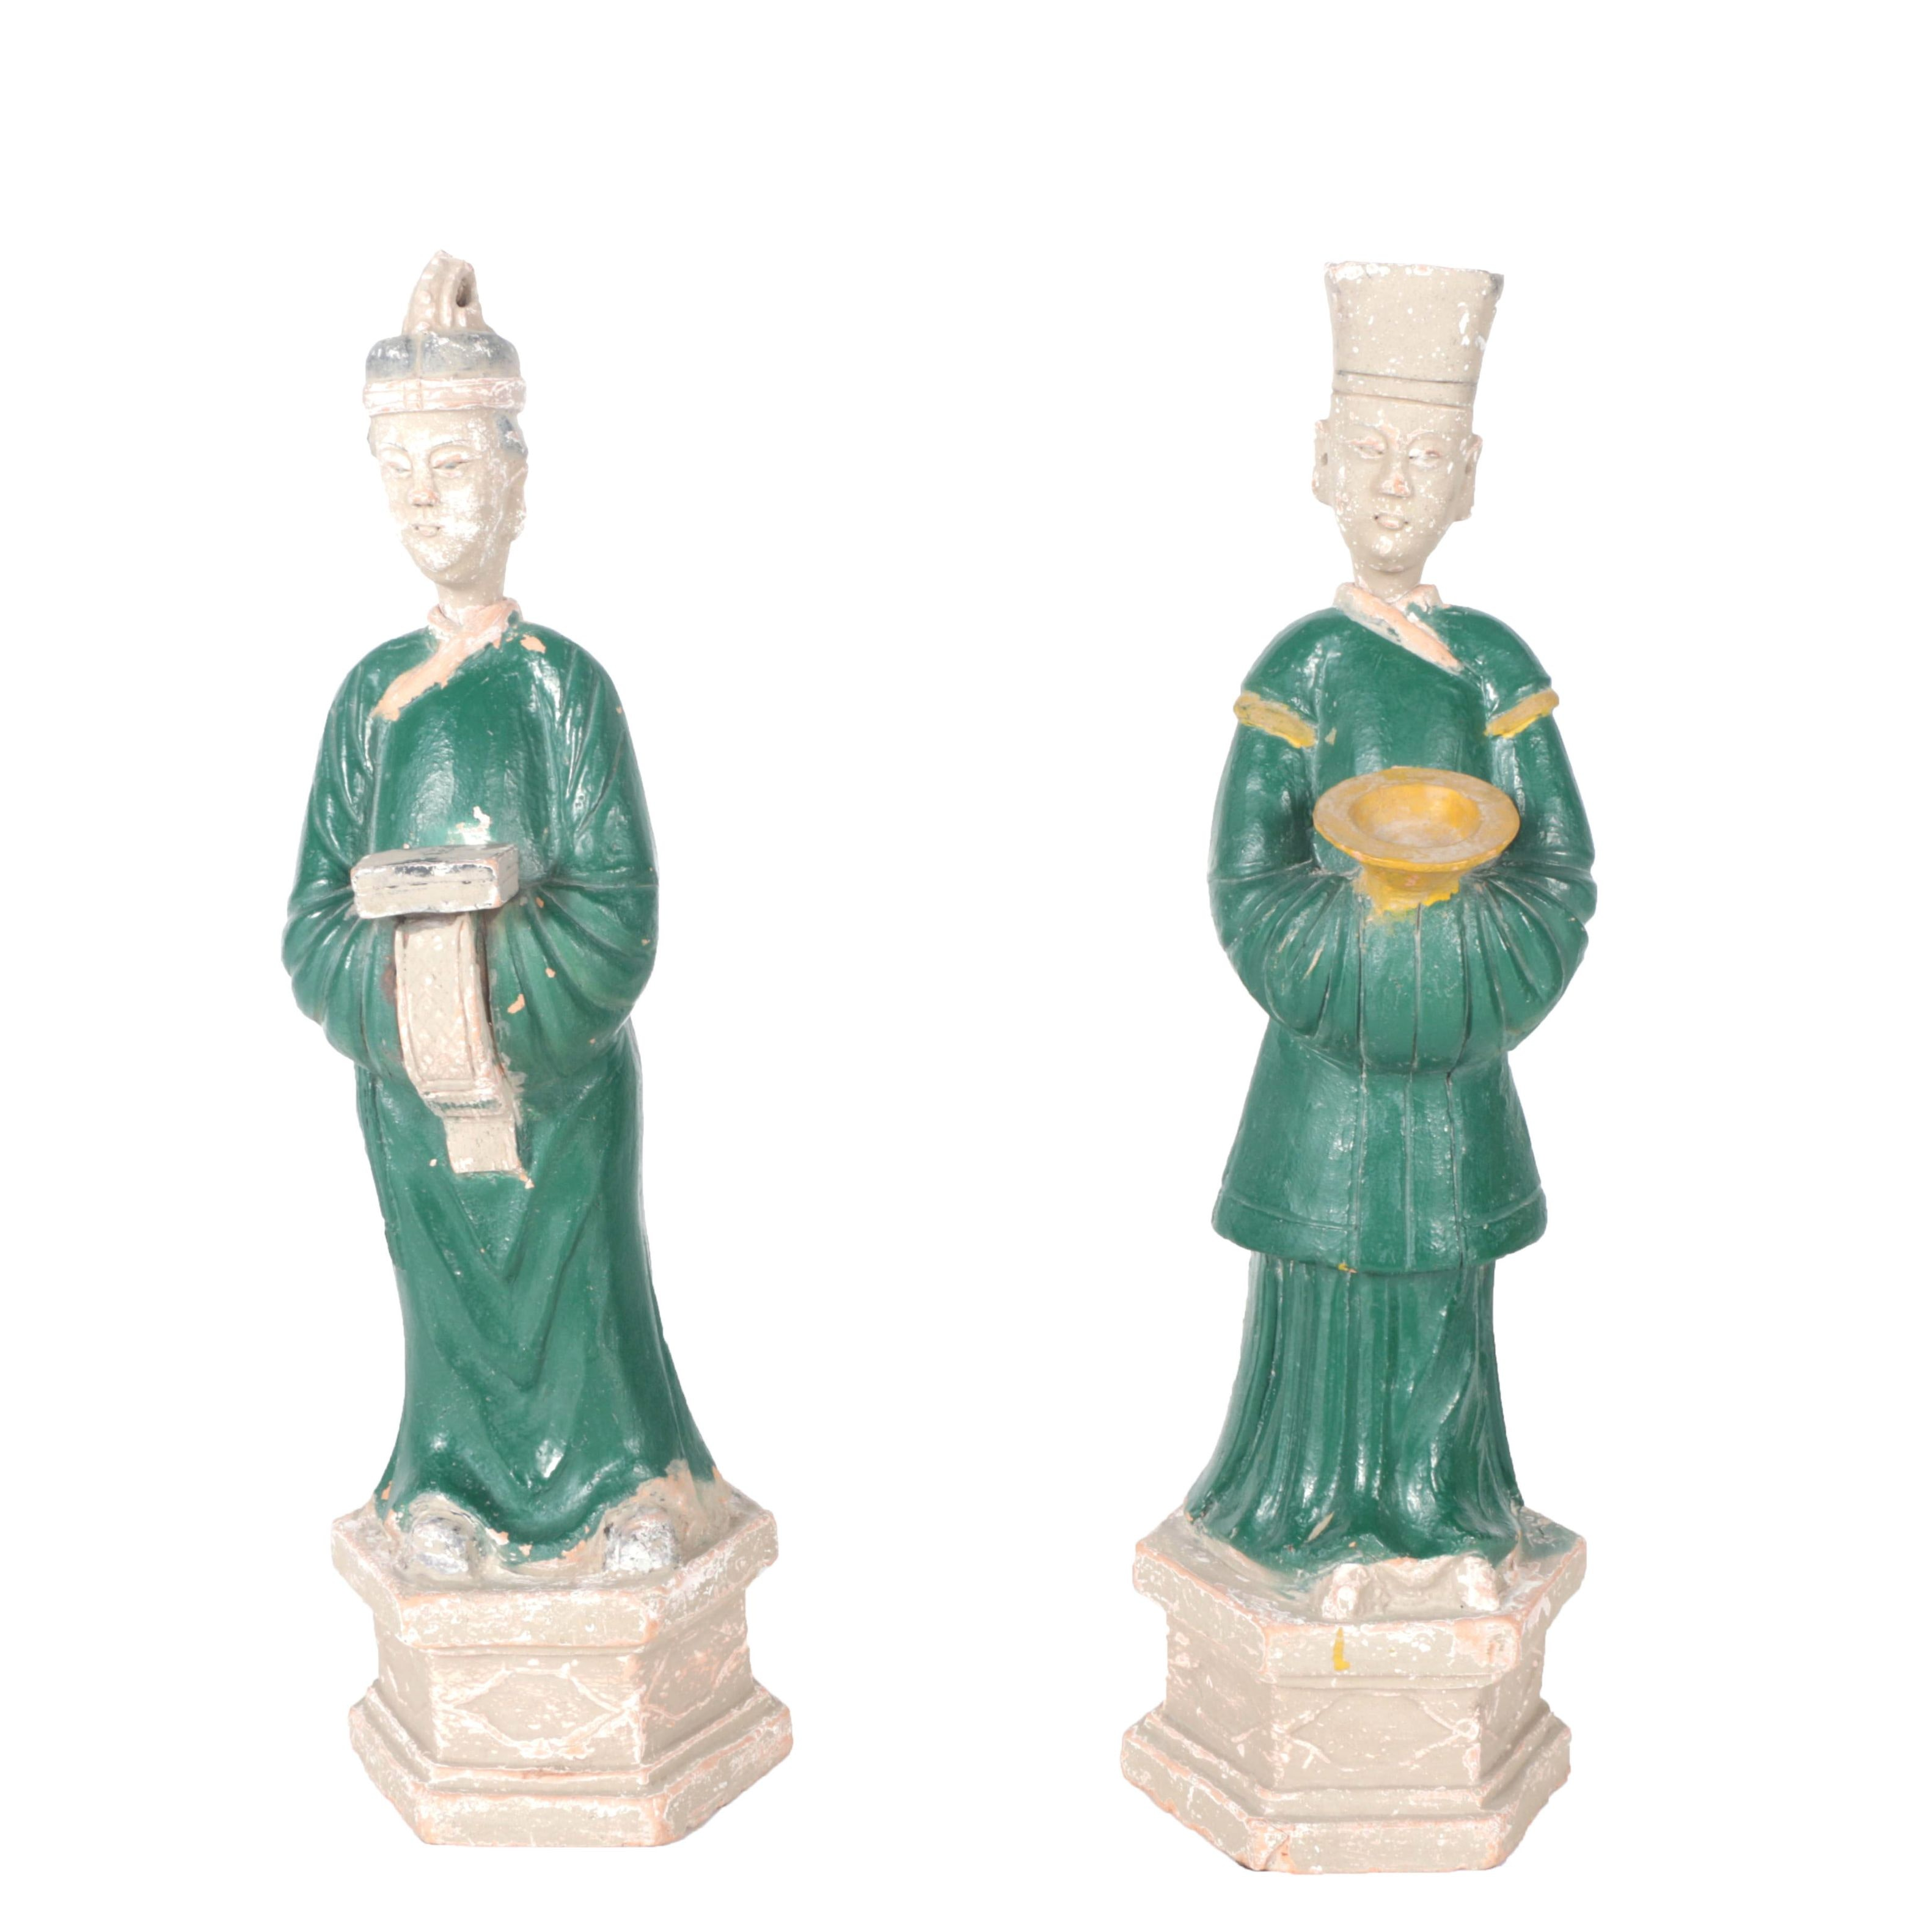 Chinese Polychrome Ceramic Sculptures